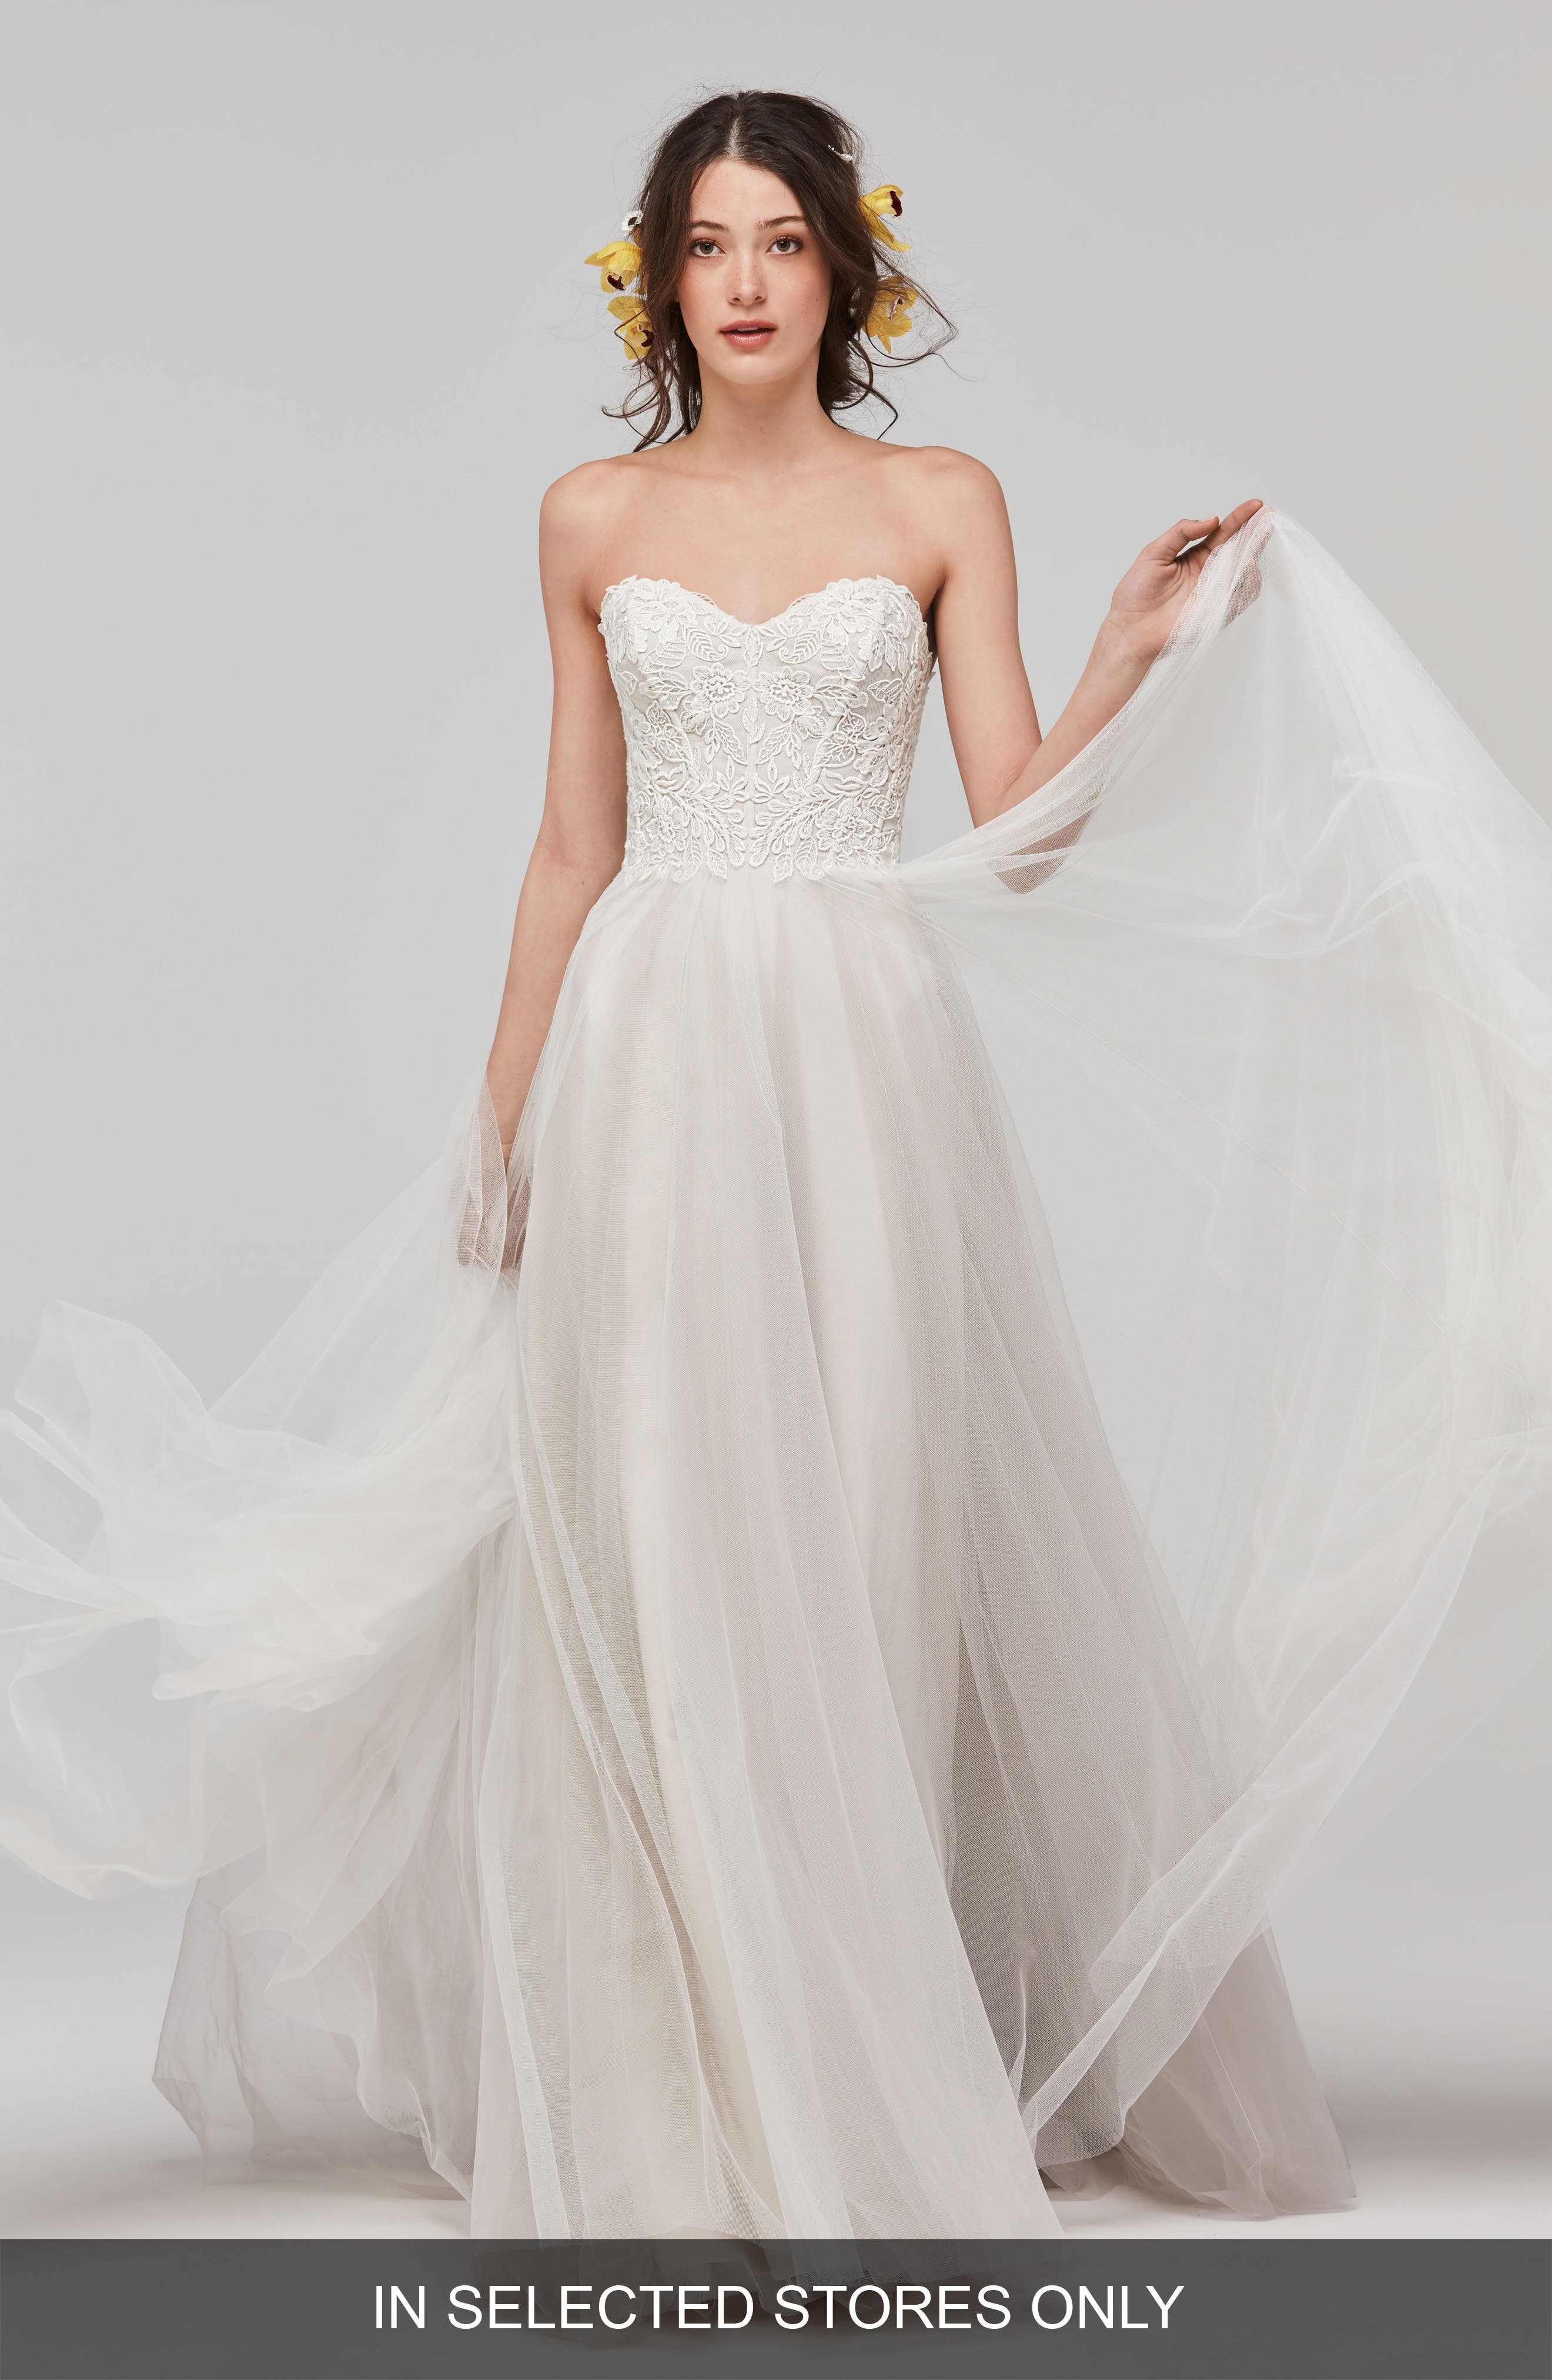 Womens wedding dresses bridal gowns nordstrom willowby mariposa strapless appliqu net tulle gown ombrellifo Image collections